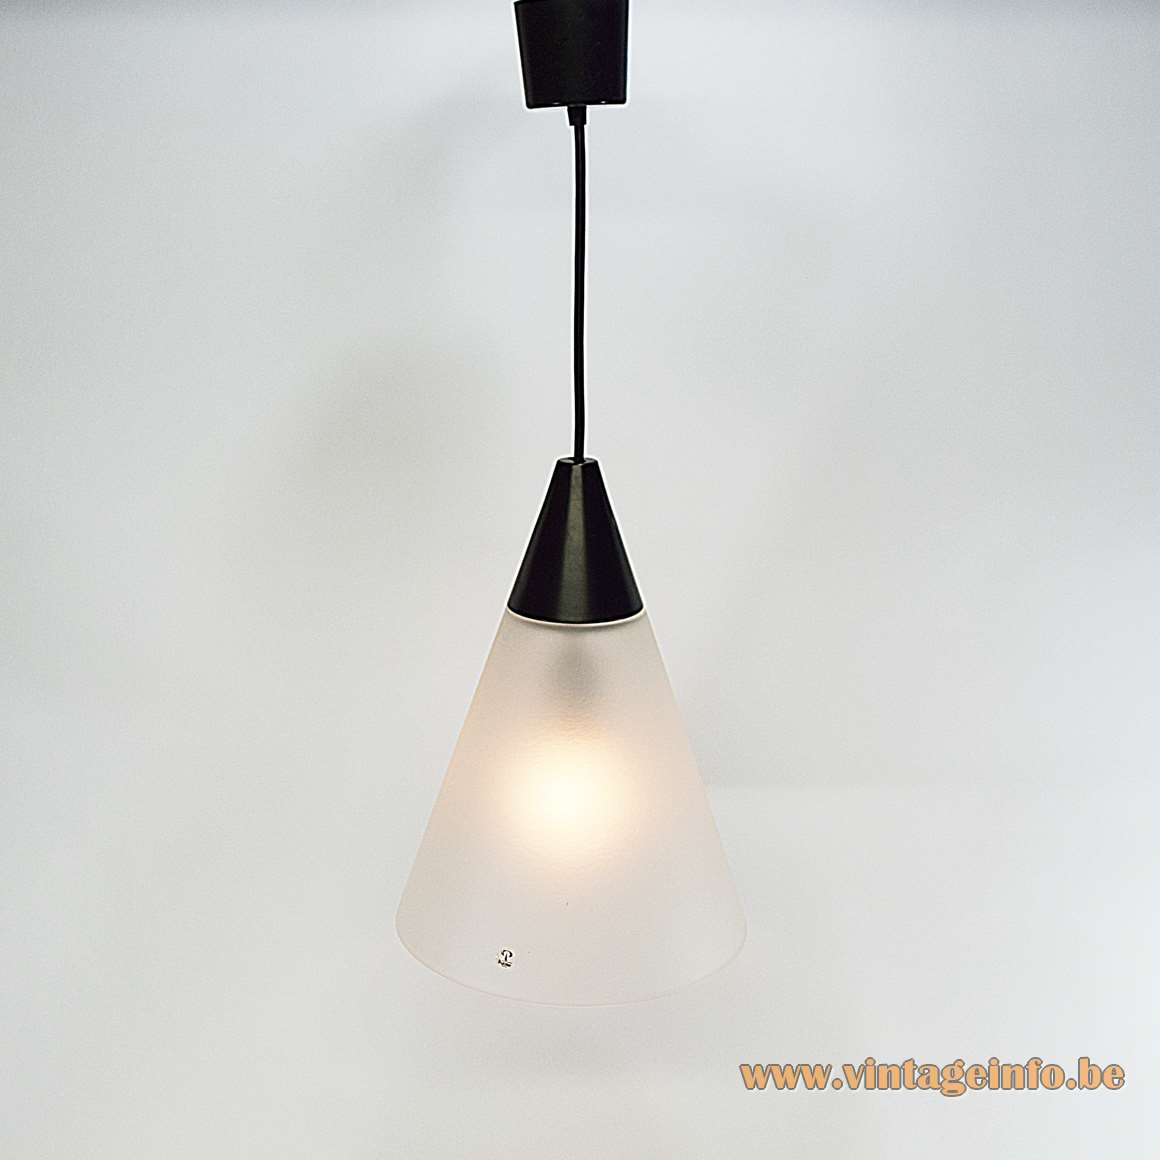 Peill + Putzler frosted cone pendant lamp hand blown glass black conical plastic top 1970s MCM